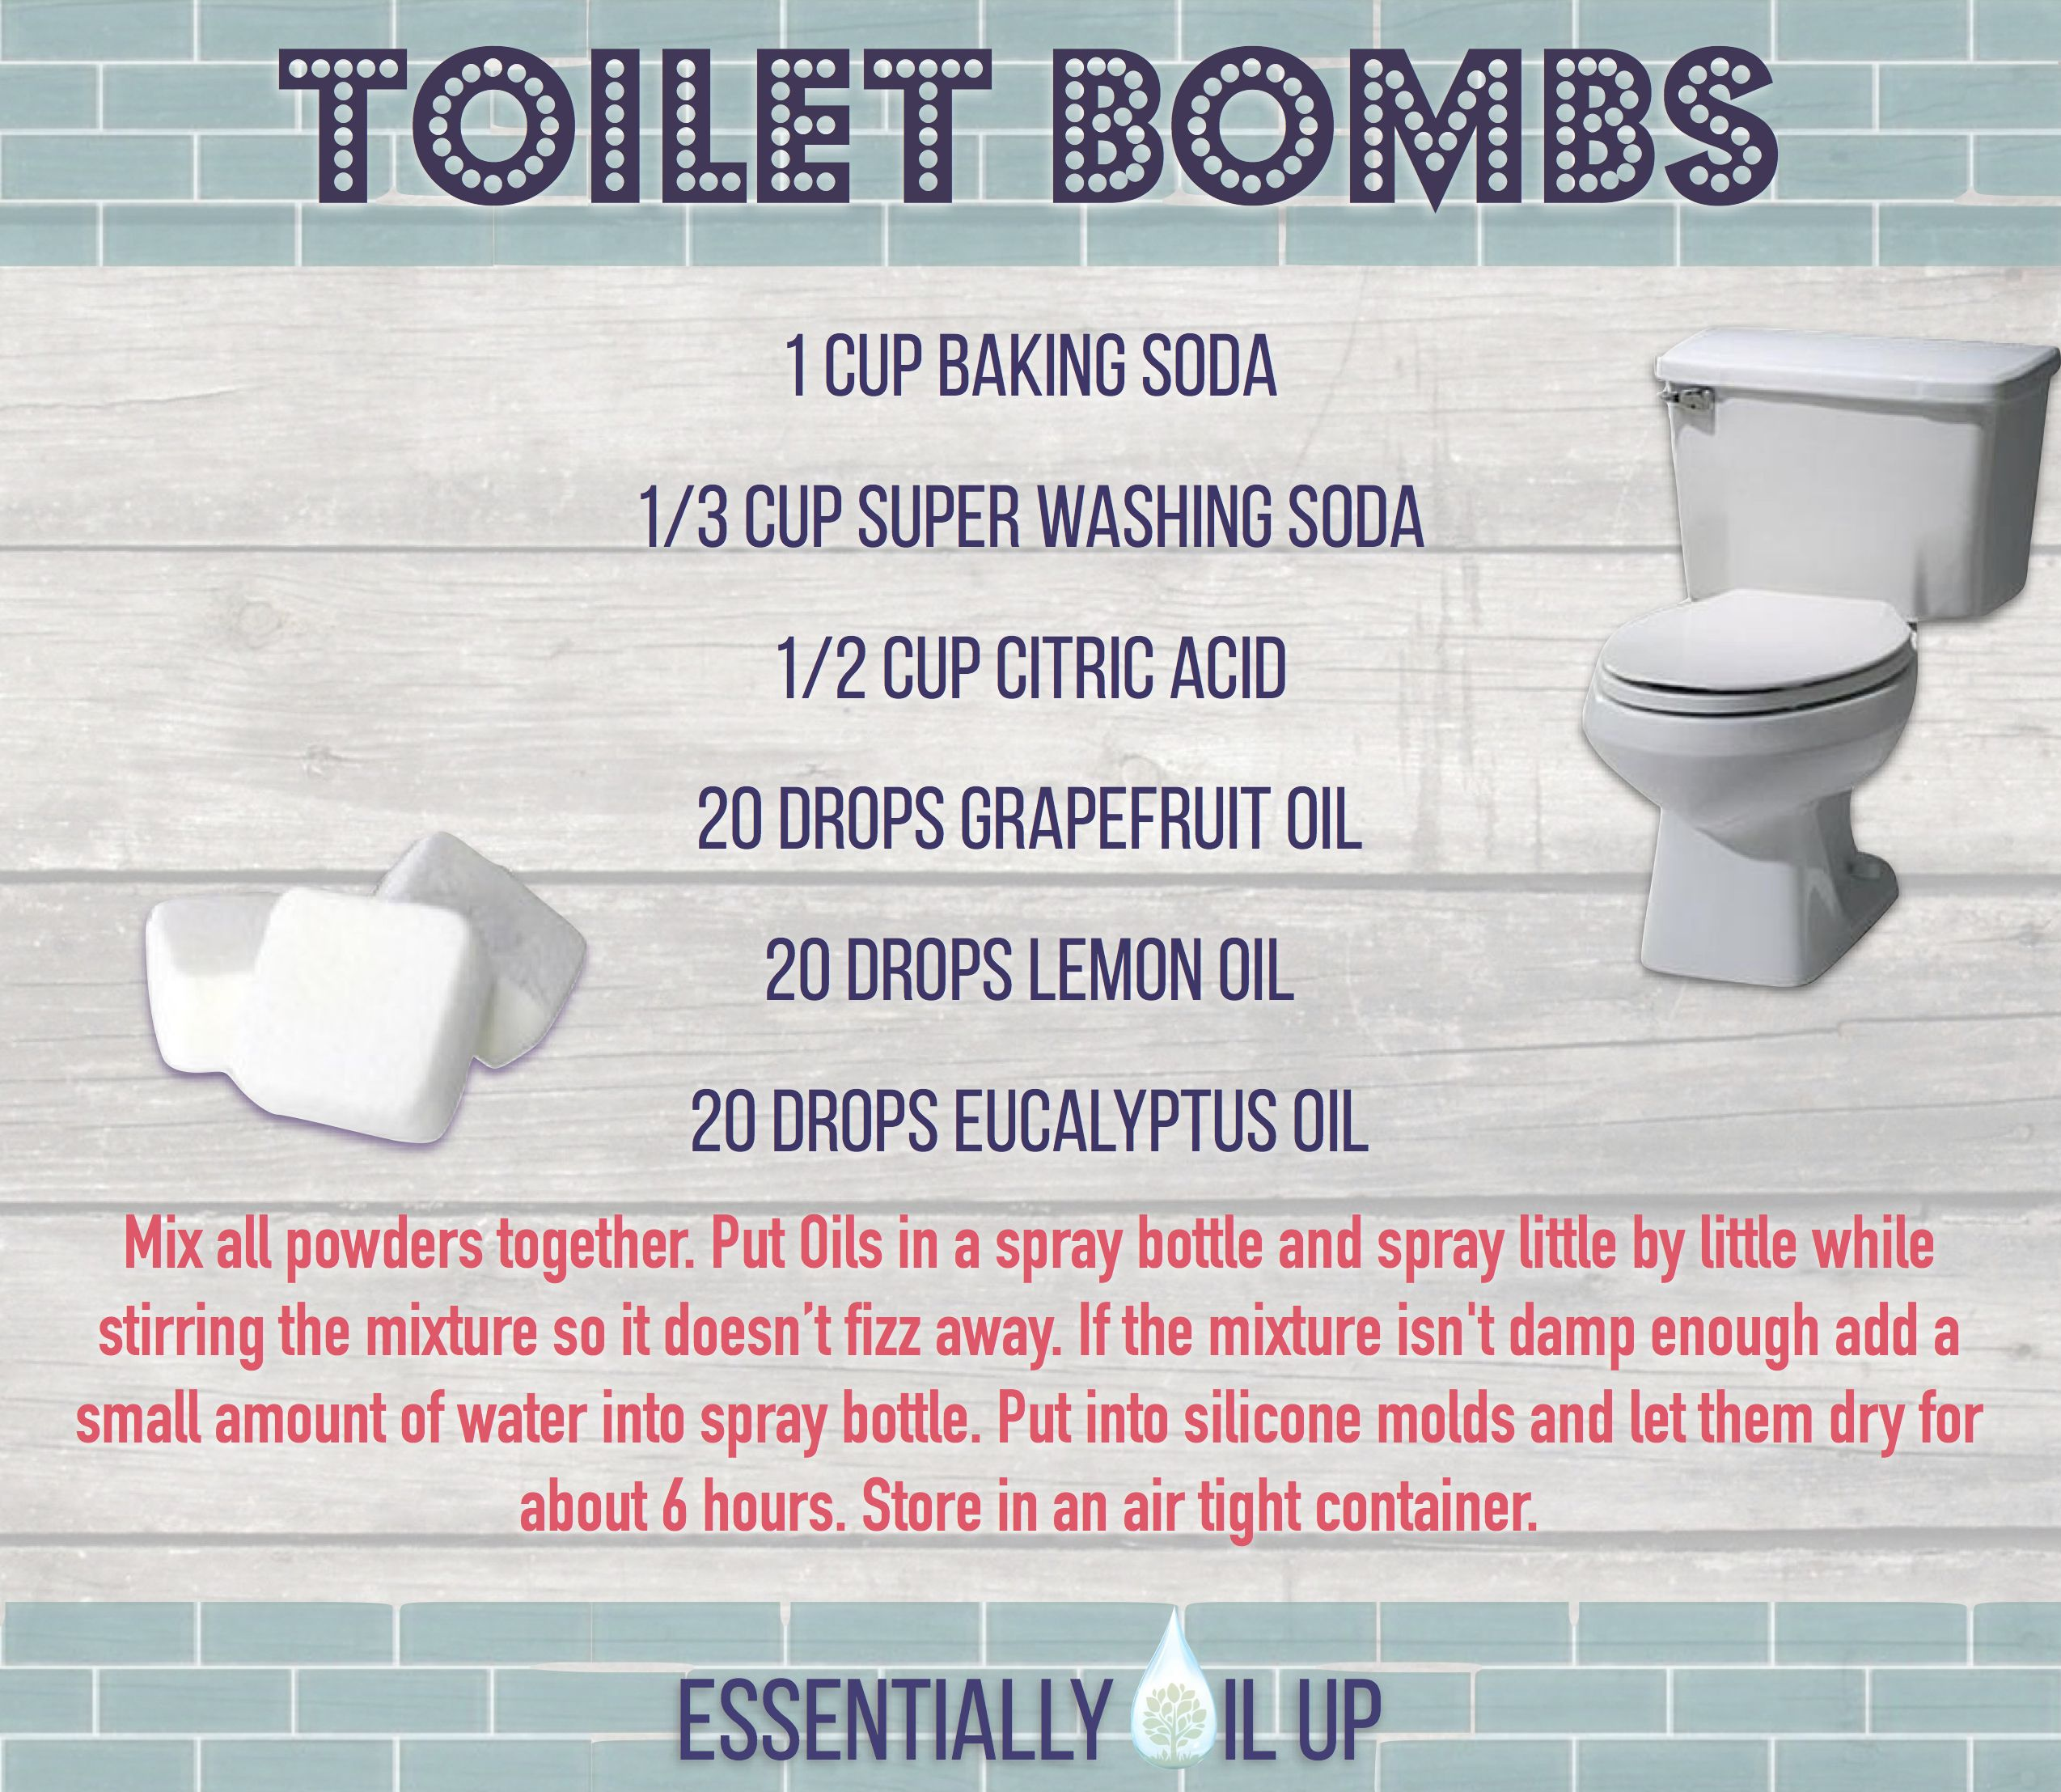 Diy Toilet Bombs Infused With Essential Oils Essential Oils Cleaning Toilet Bombs Homemade Cleaning Products